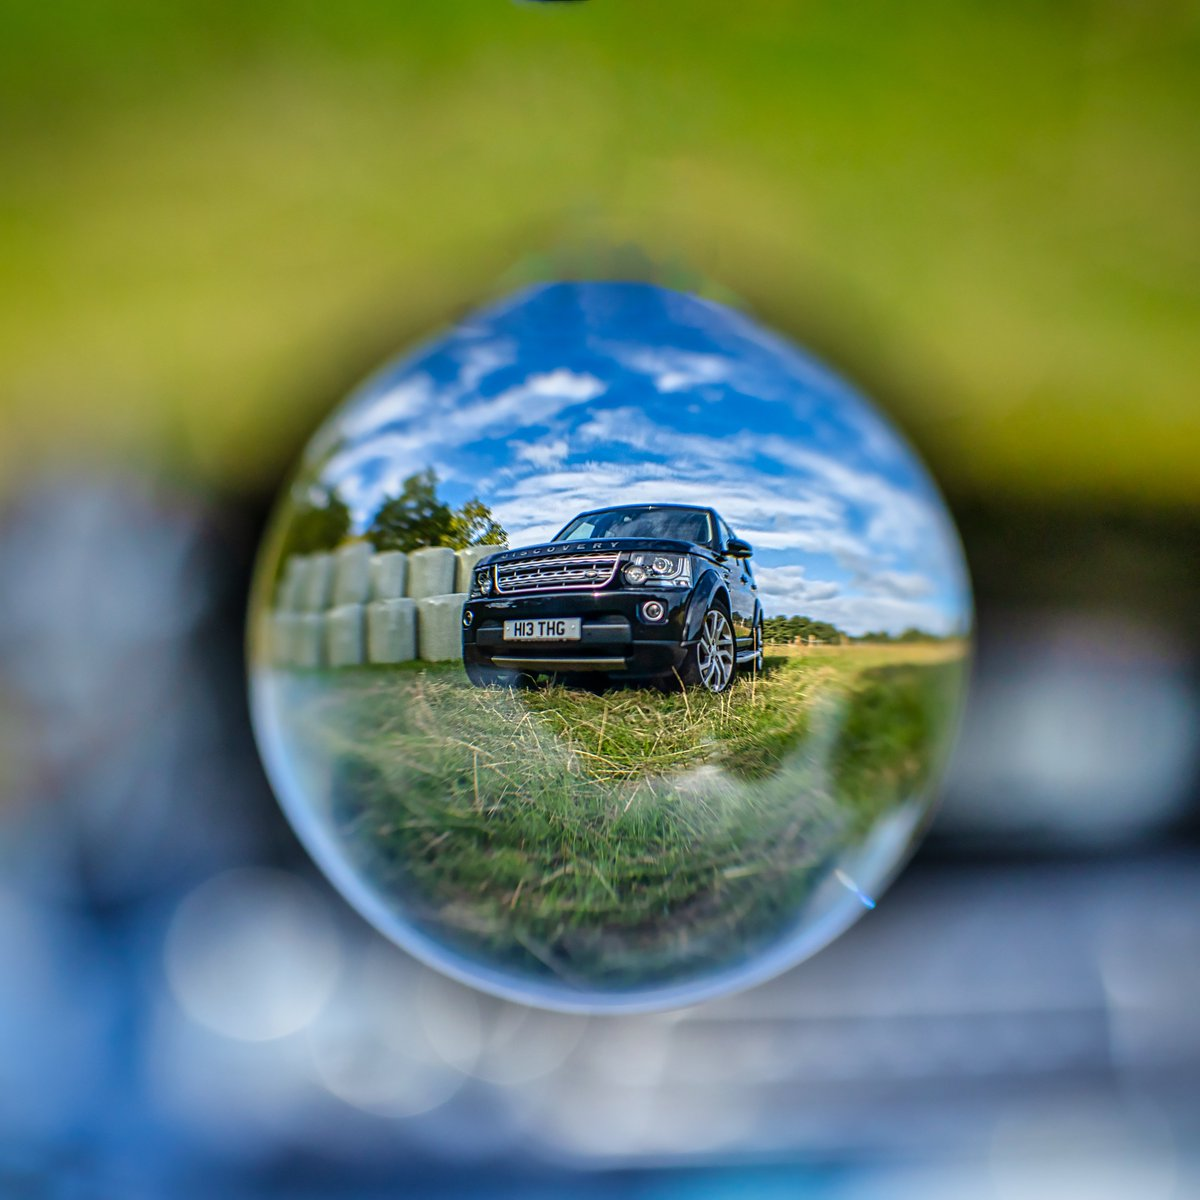 My first attempt with the @refractique Lensball - need loads of practice but D4 wont mind posing for a few shots ! #mirrorless #mirrorlessgeeks #canon #canoneosr  #creativeshot #artofvisual #artofbokeh  @Lightroom #lightroom #photography #photooftheday #landrover @LandRover_UKpic.twitter.com/hVQpPMGvo5